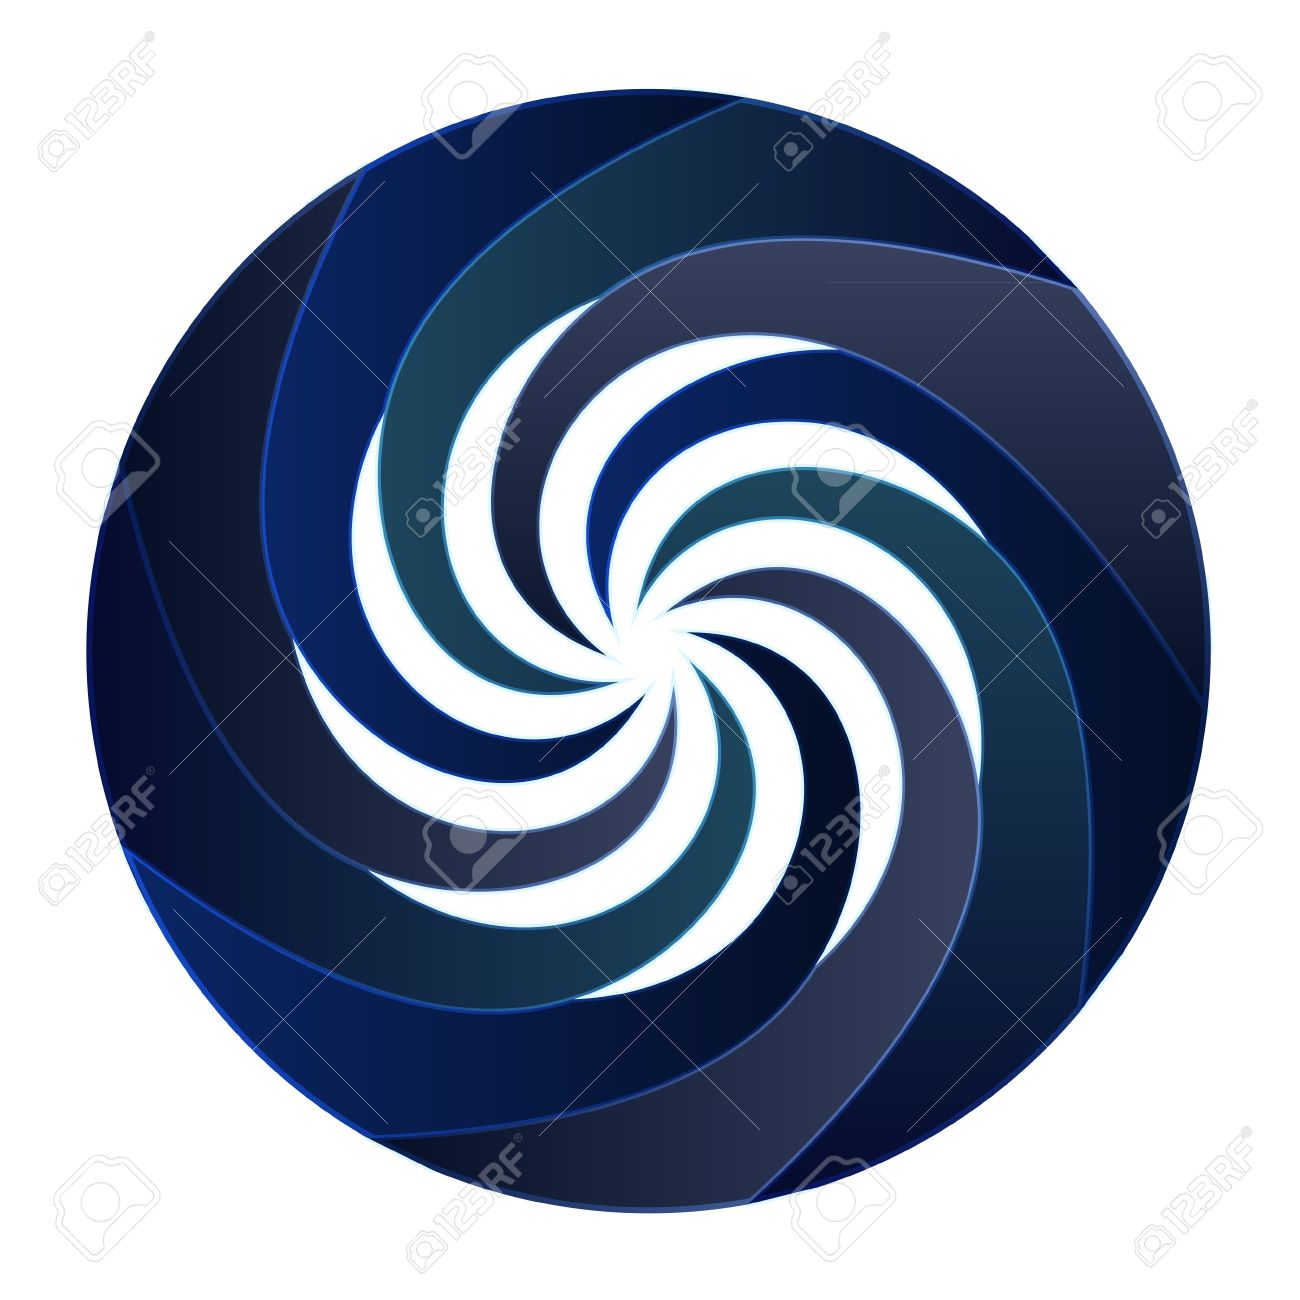 1300x1300 Isolated Blue Central Swirl Circle Illustration Royalty Free